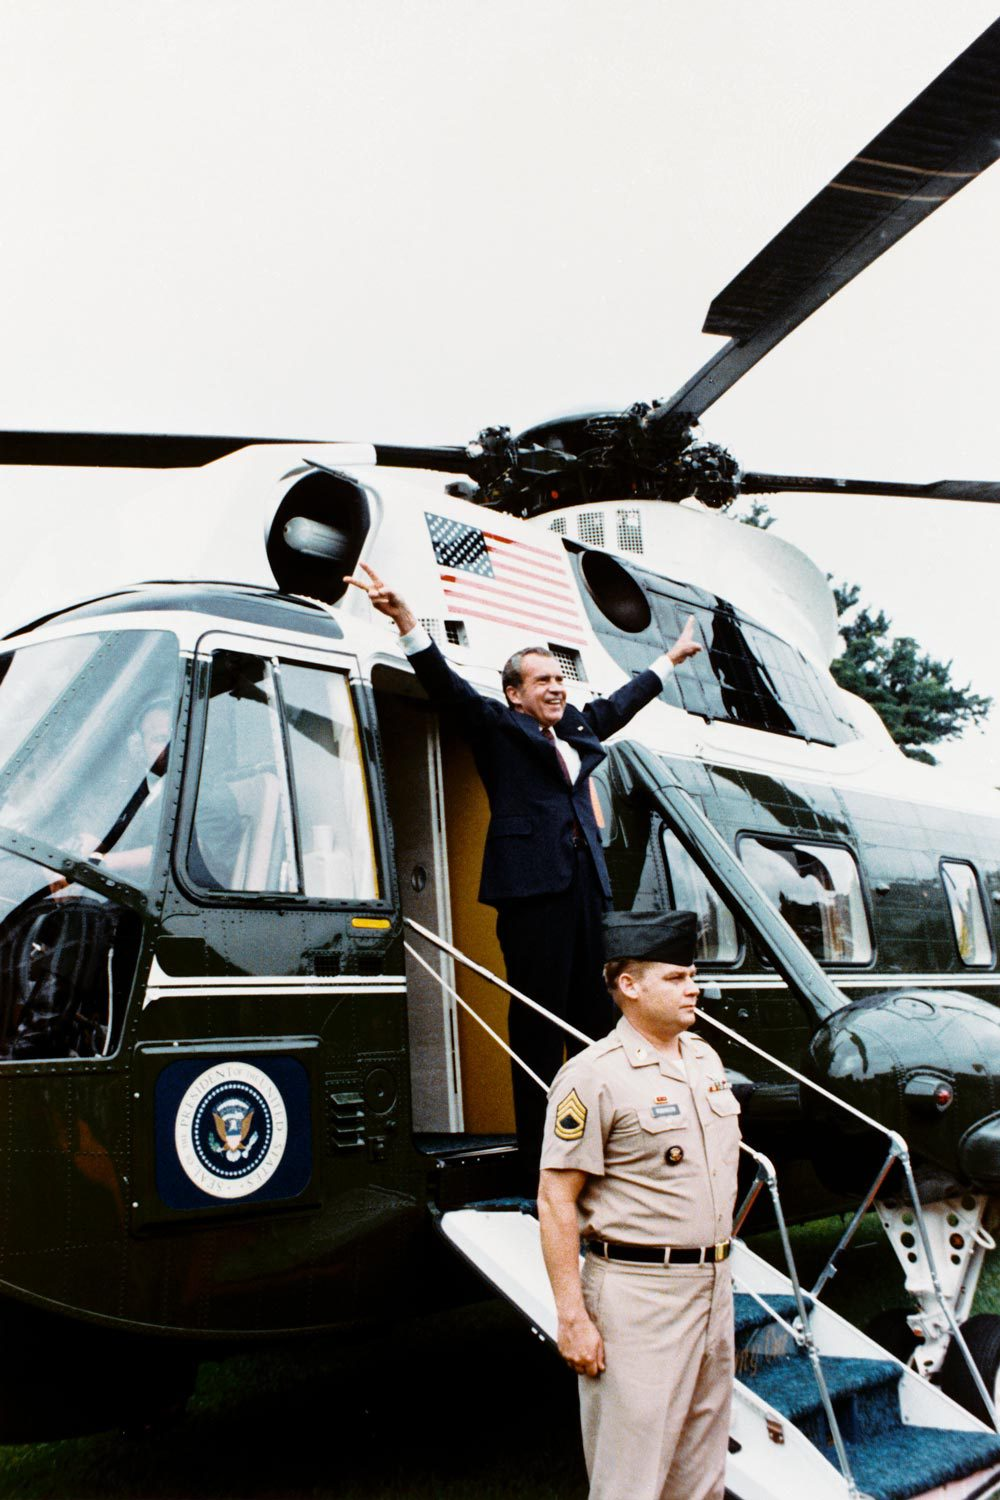 Richard Nixon, pictured waving farewell to staff, resigned after impeachment proceedings revealed his involvement in the Watergate break-in.